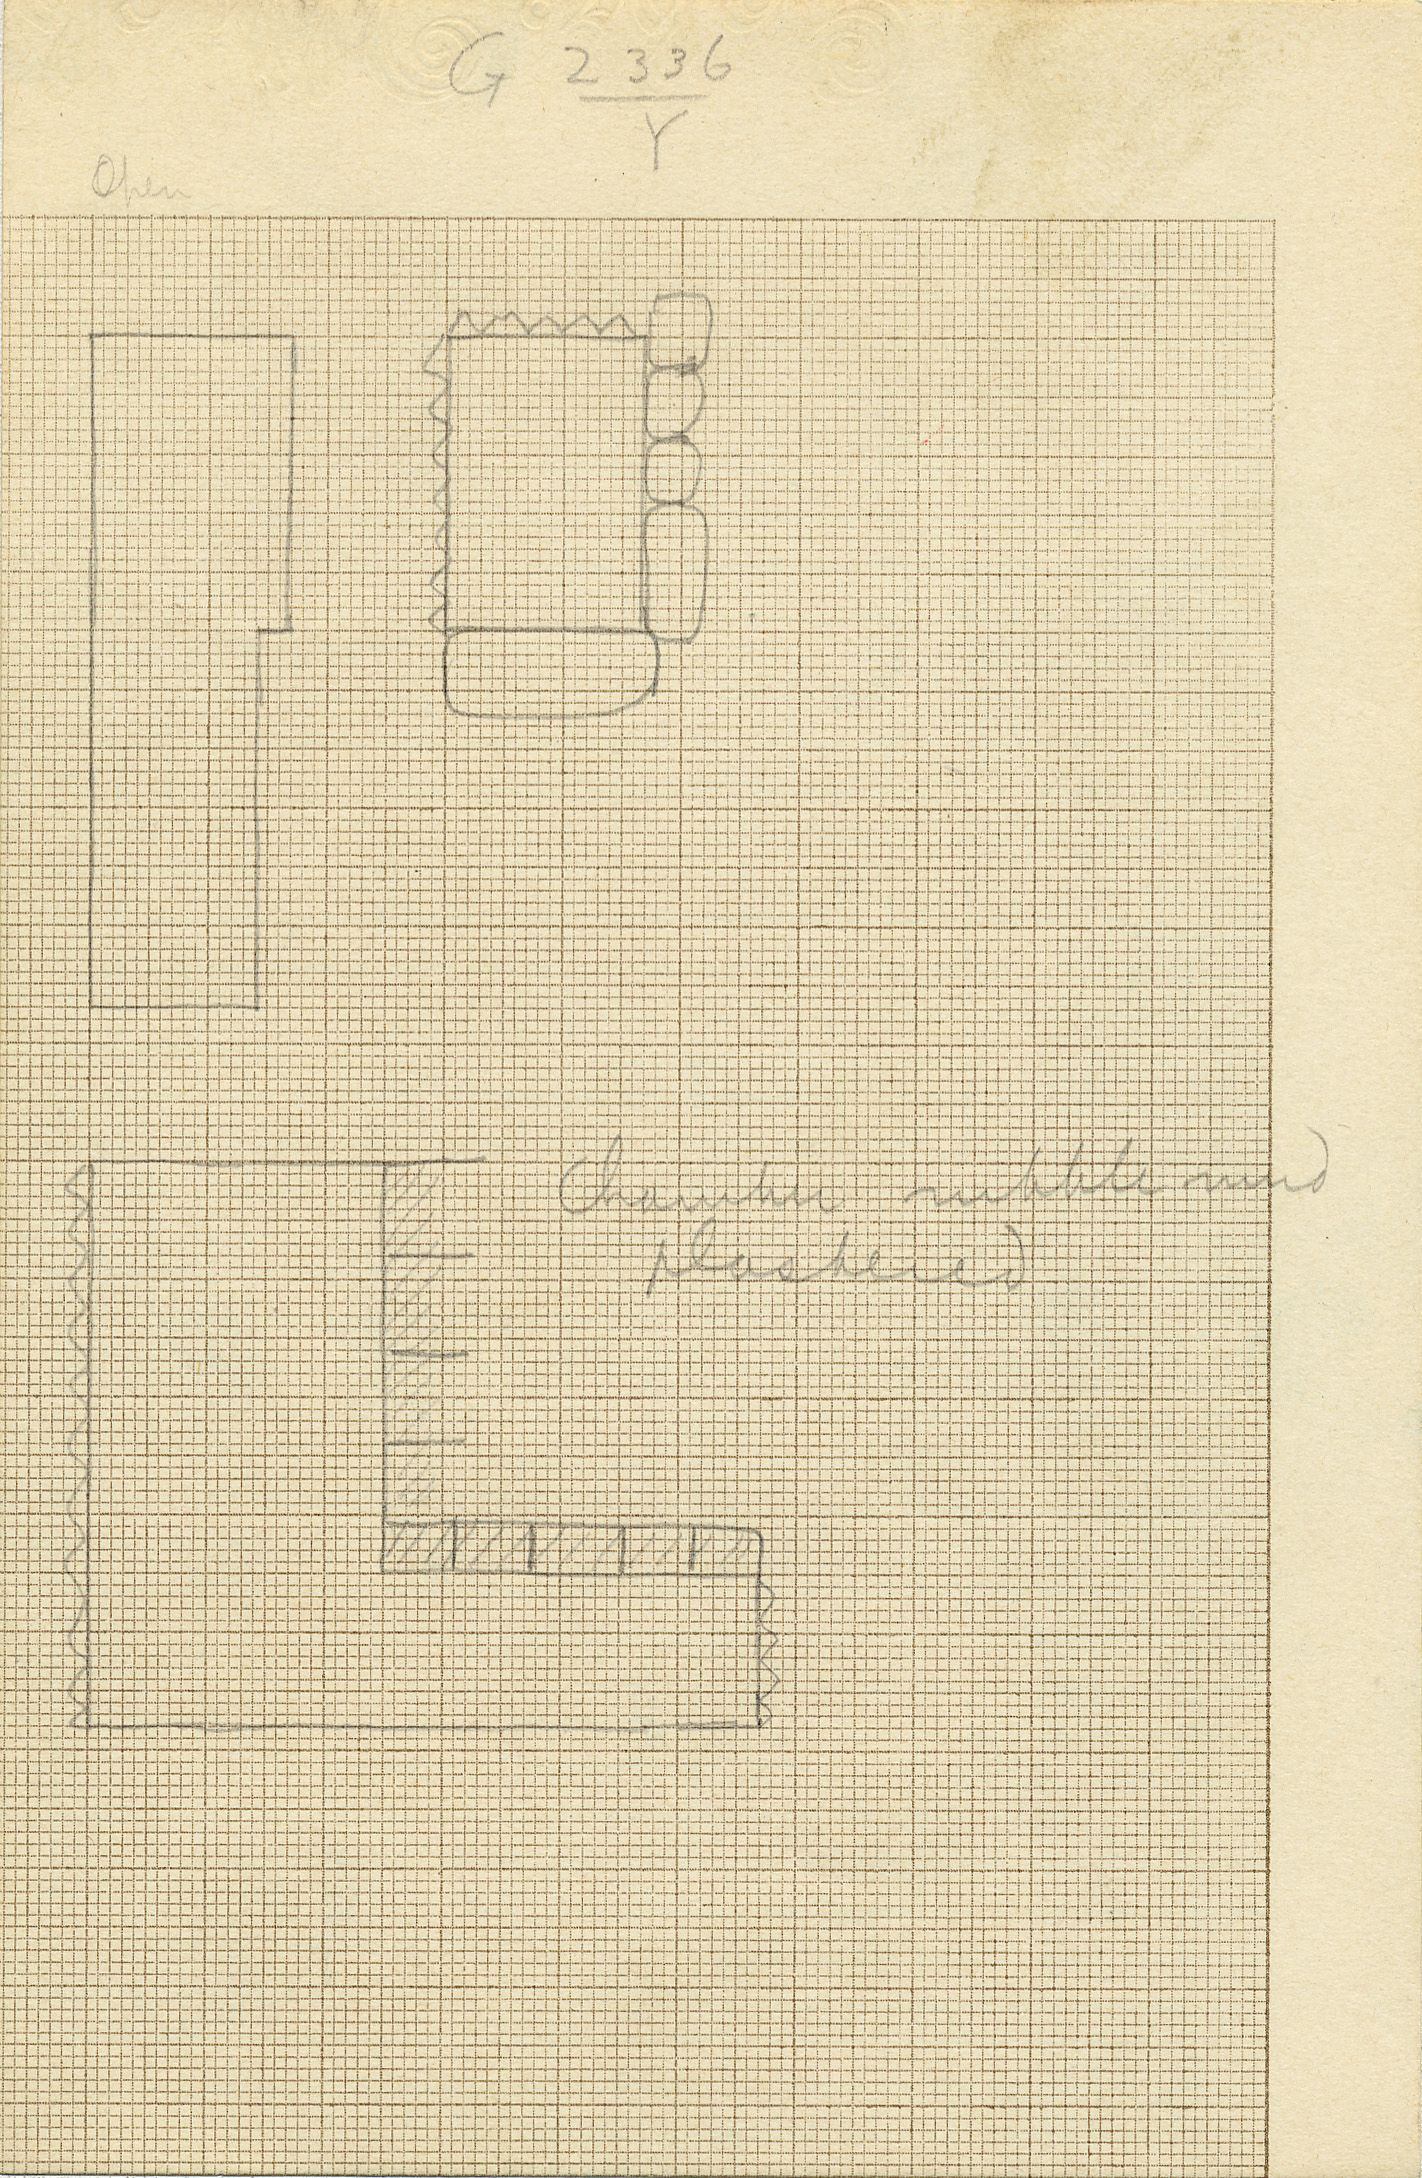 Maps and plans: G 2336, Shaft Y